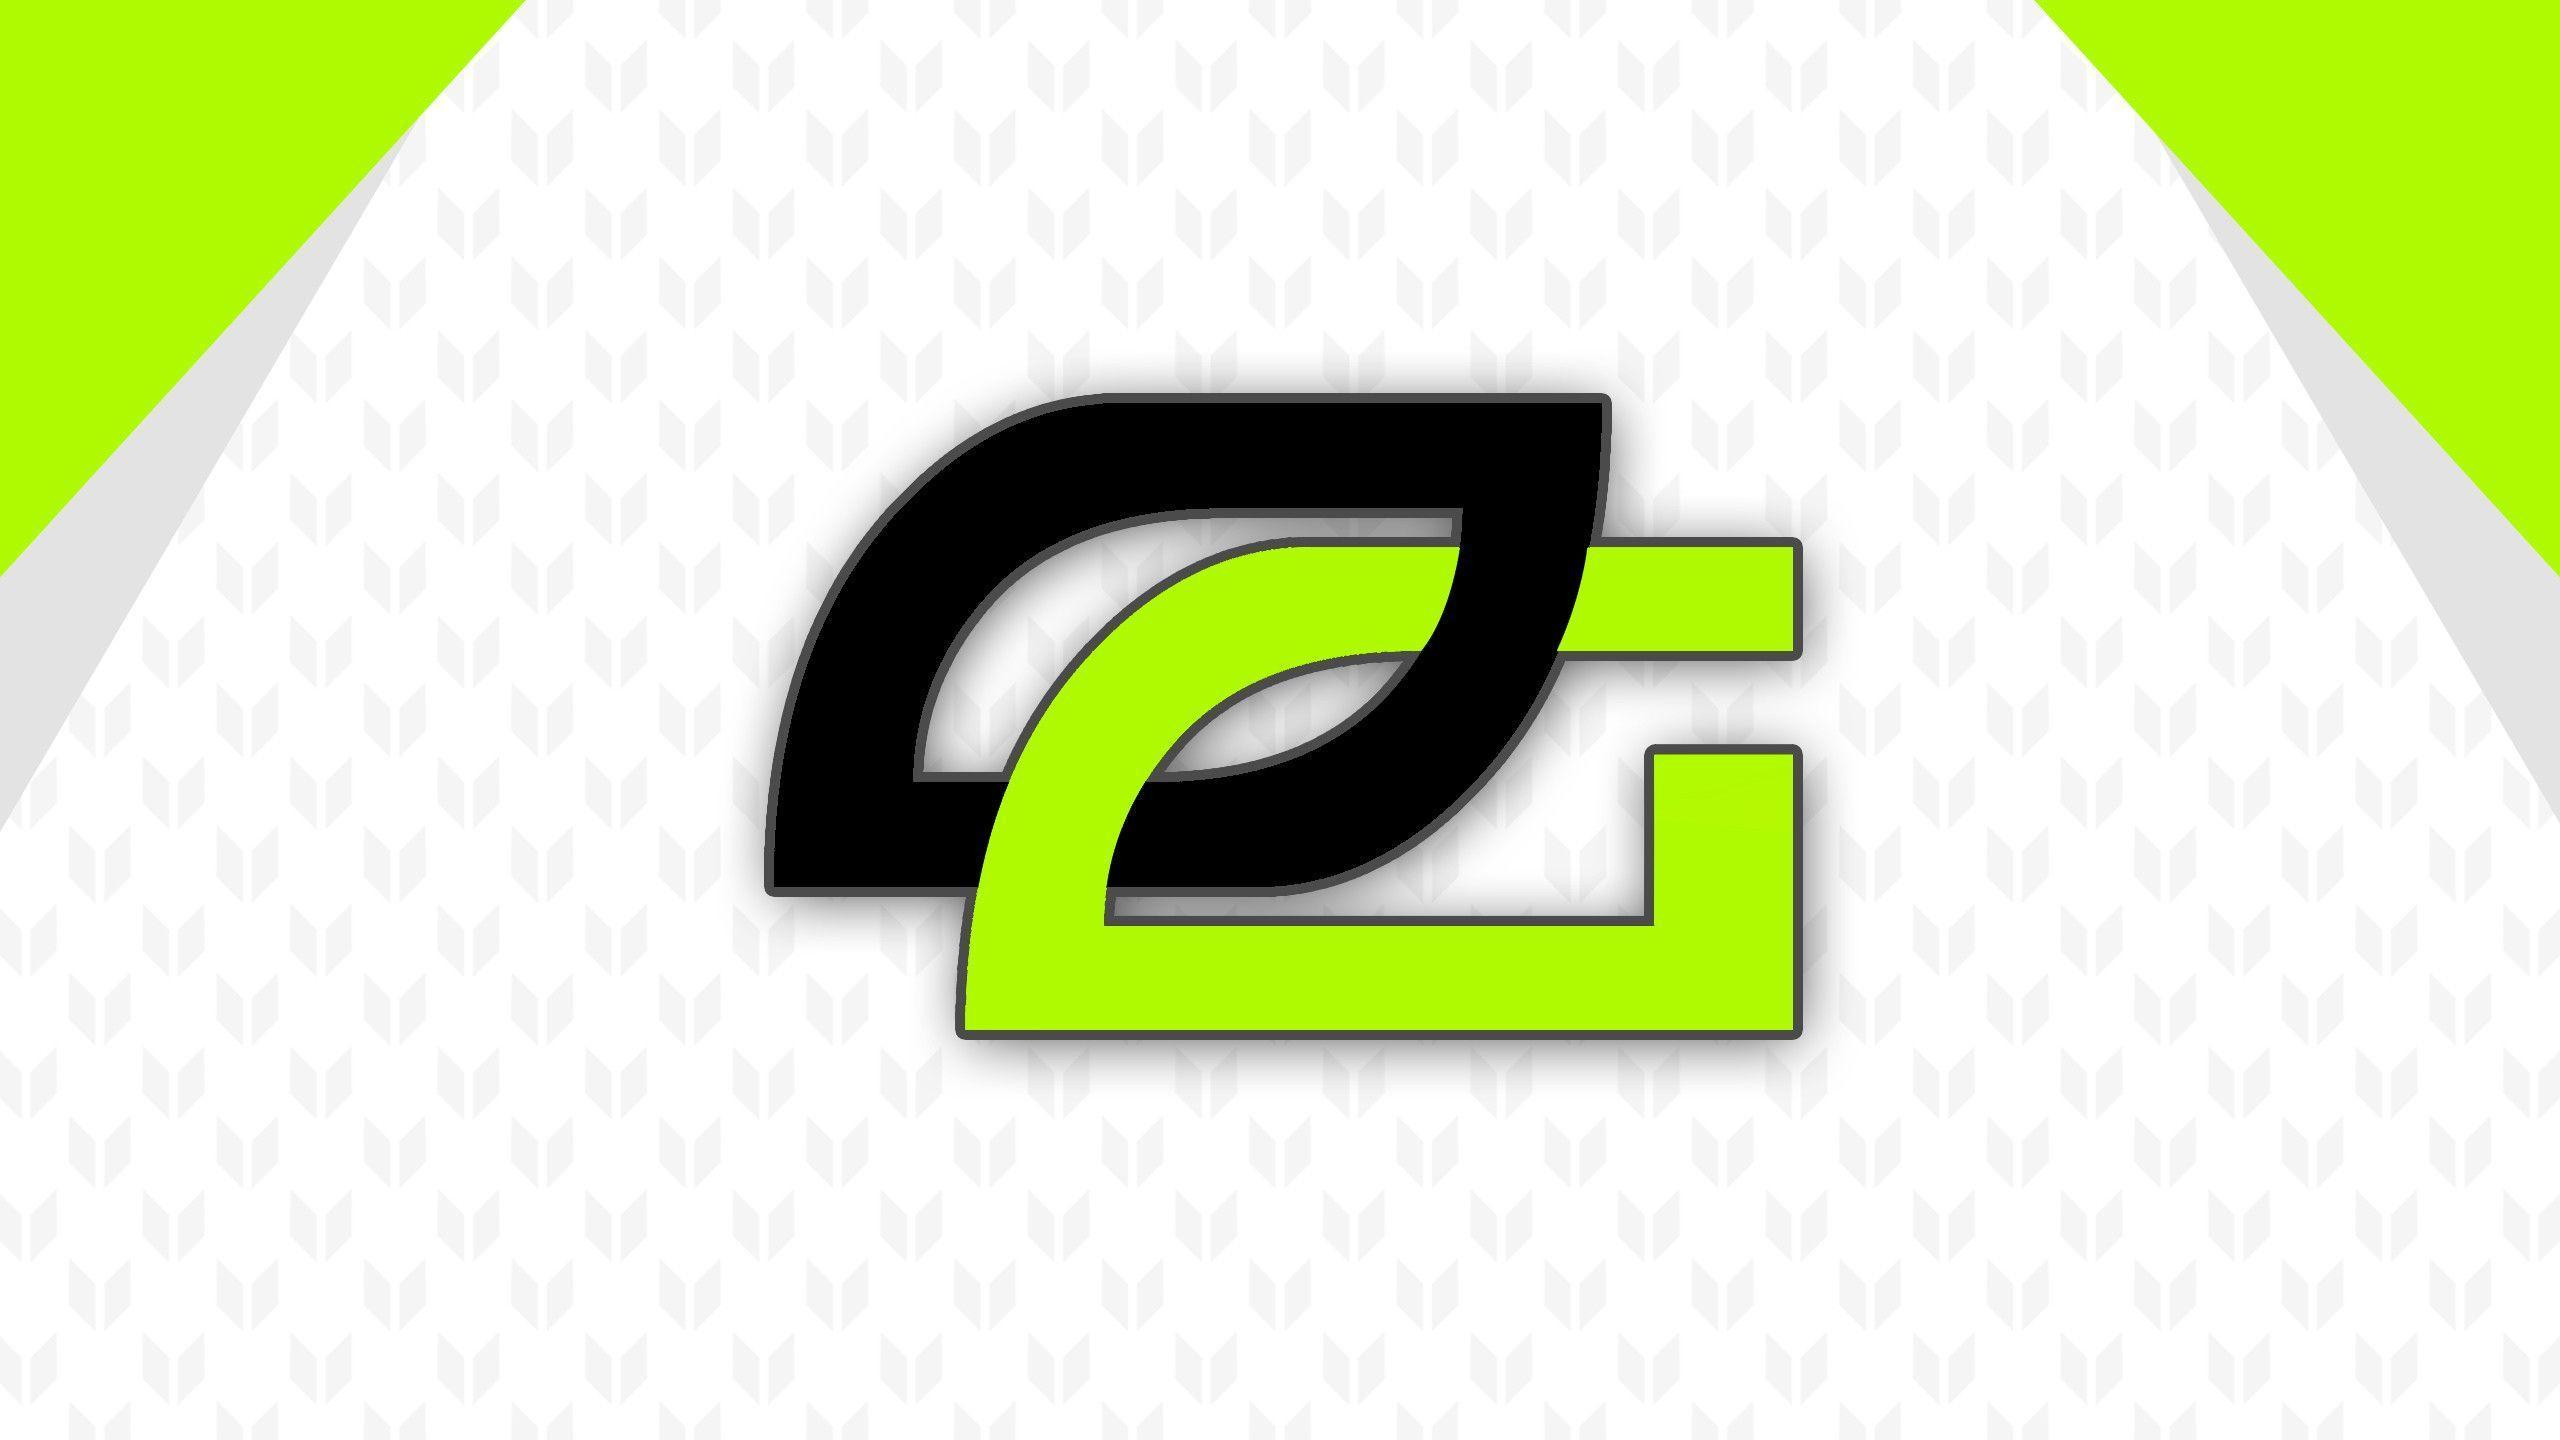 Game Wallpaper: Optic Gaming Roster Android Wallpapers For HD